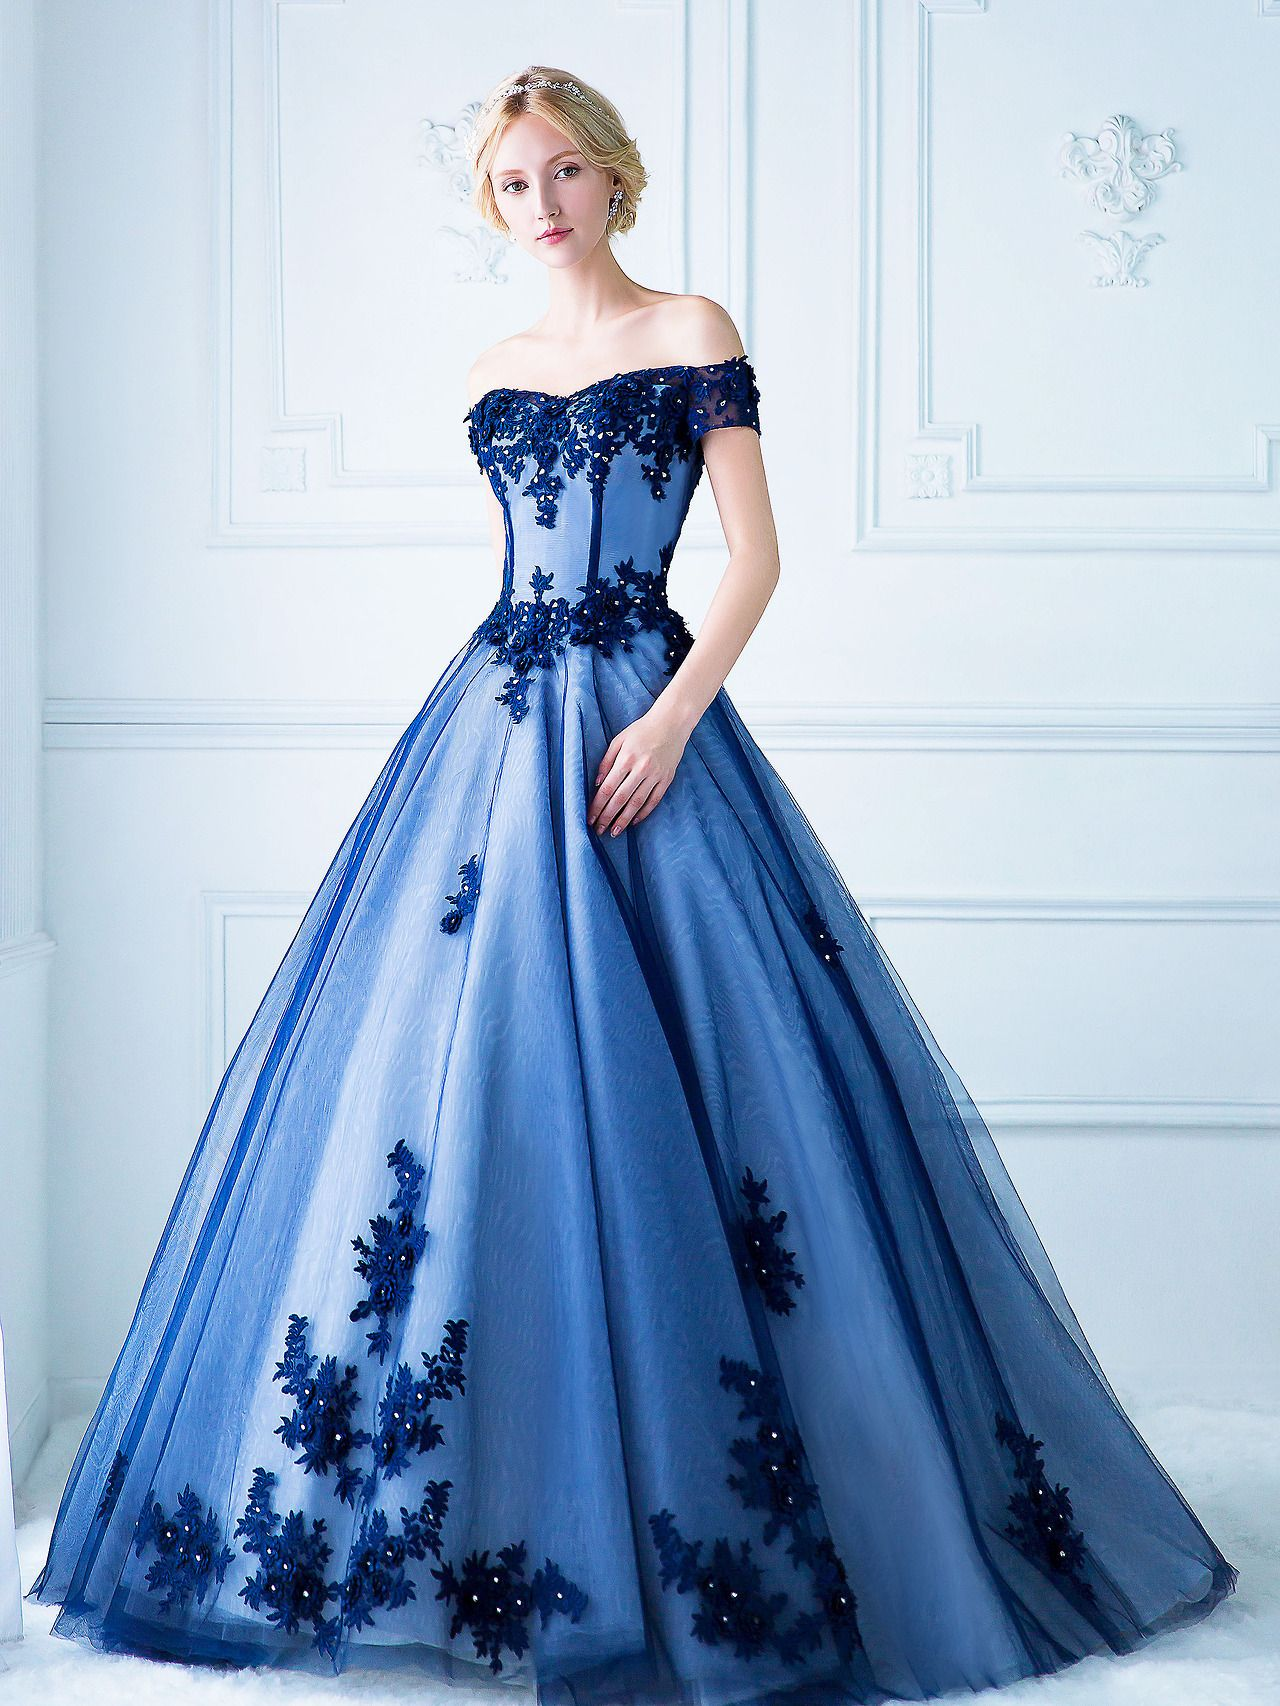 Pin by kim hutchison on gowns pinterest royal blue weddings